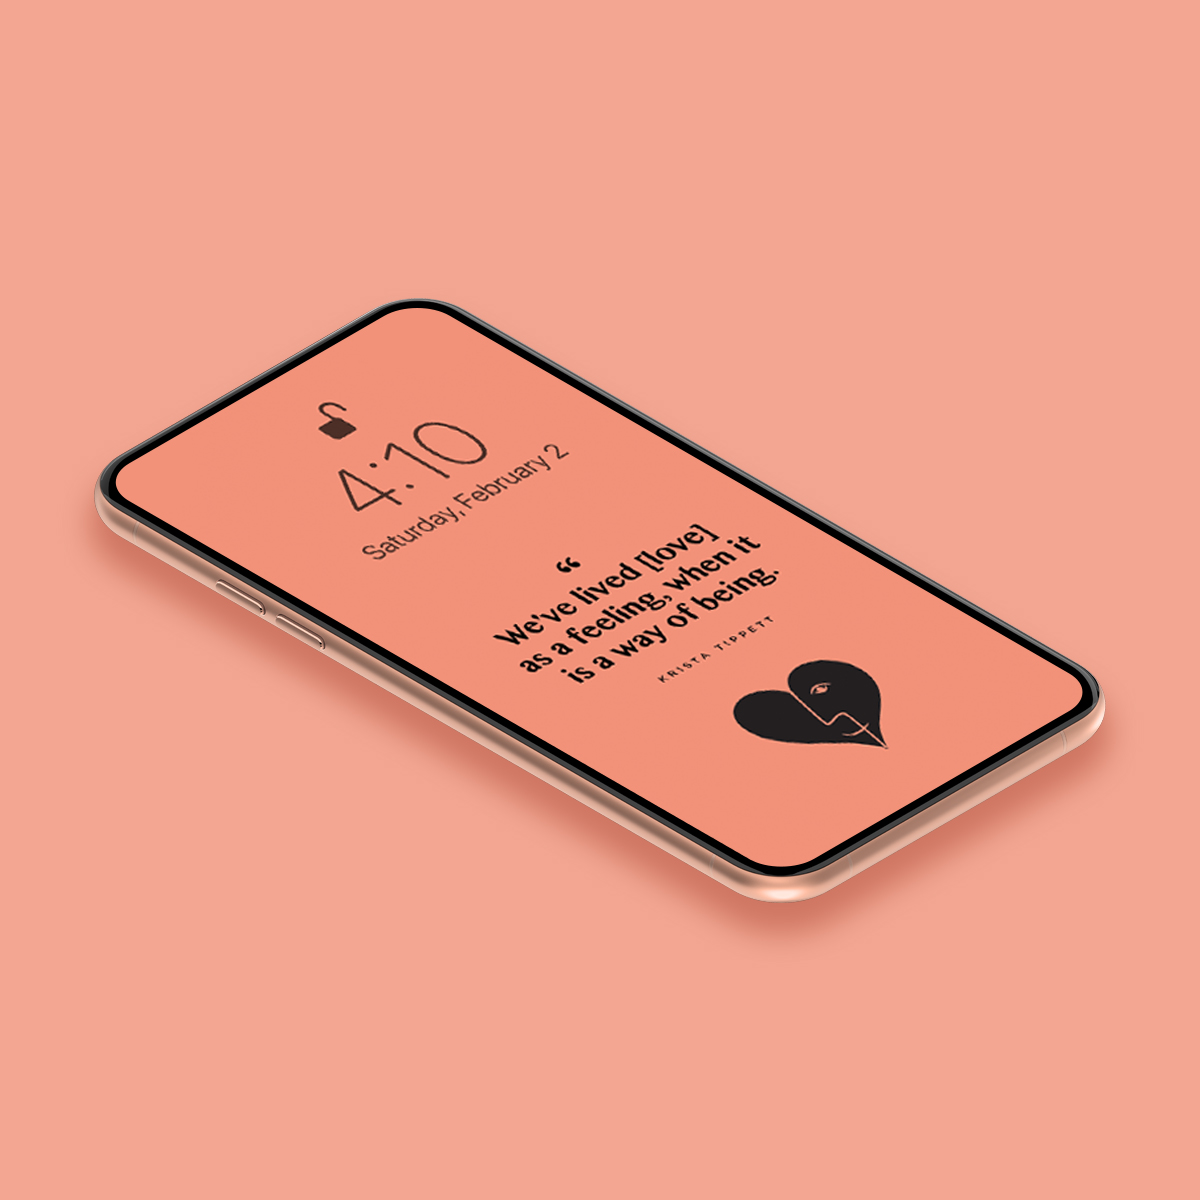 Cellphone Wallpaper | Krista Tippett on Love | Of Note Stationers